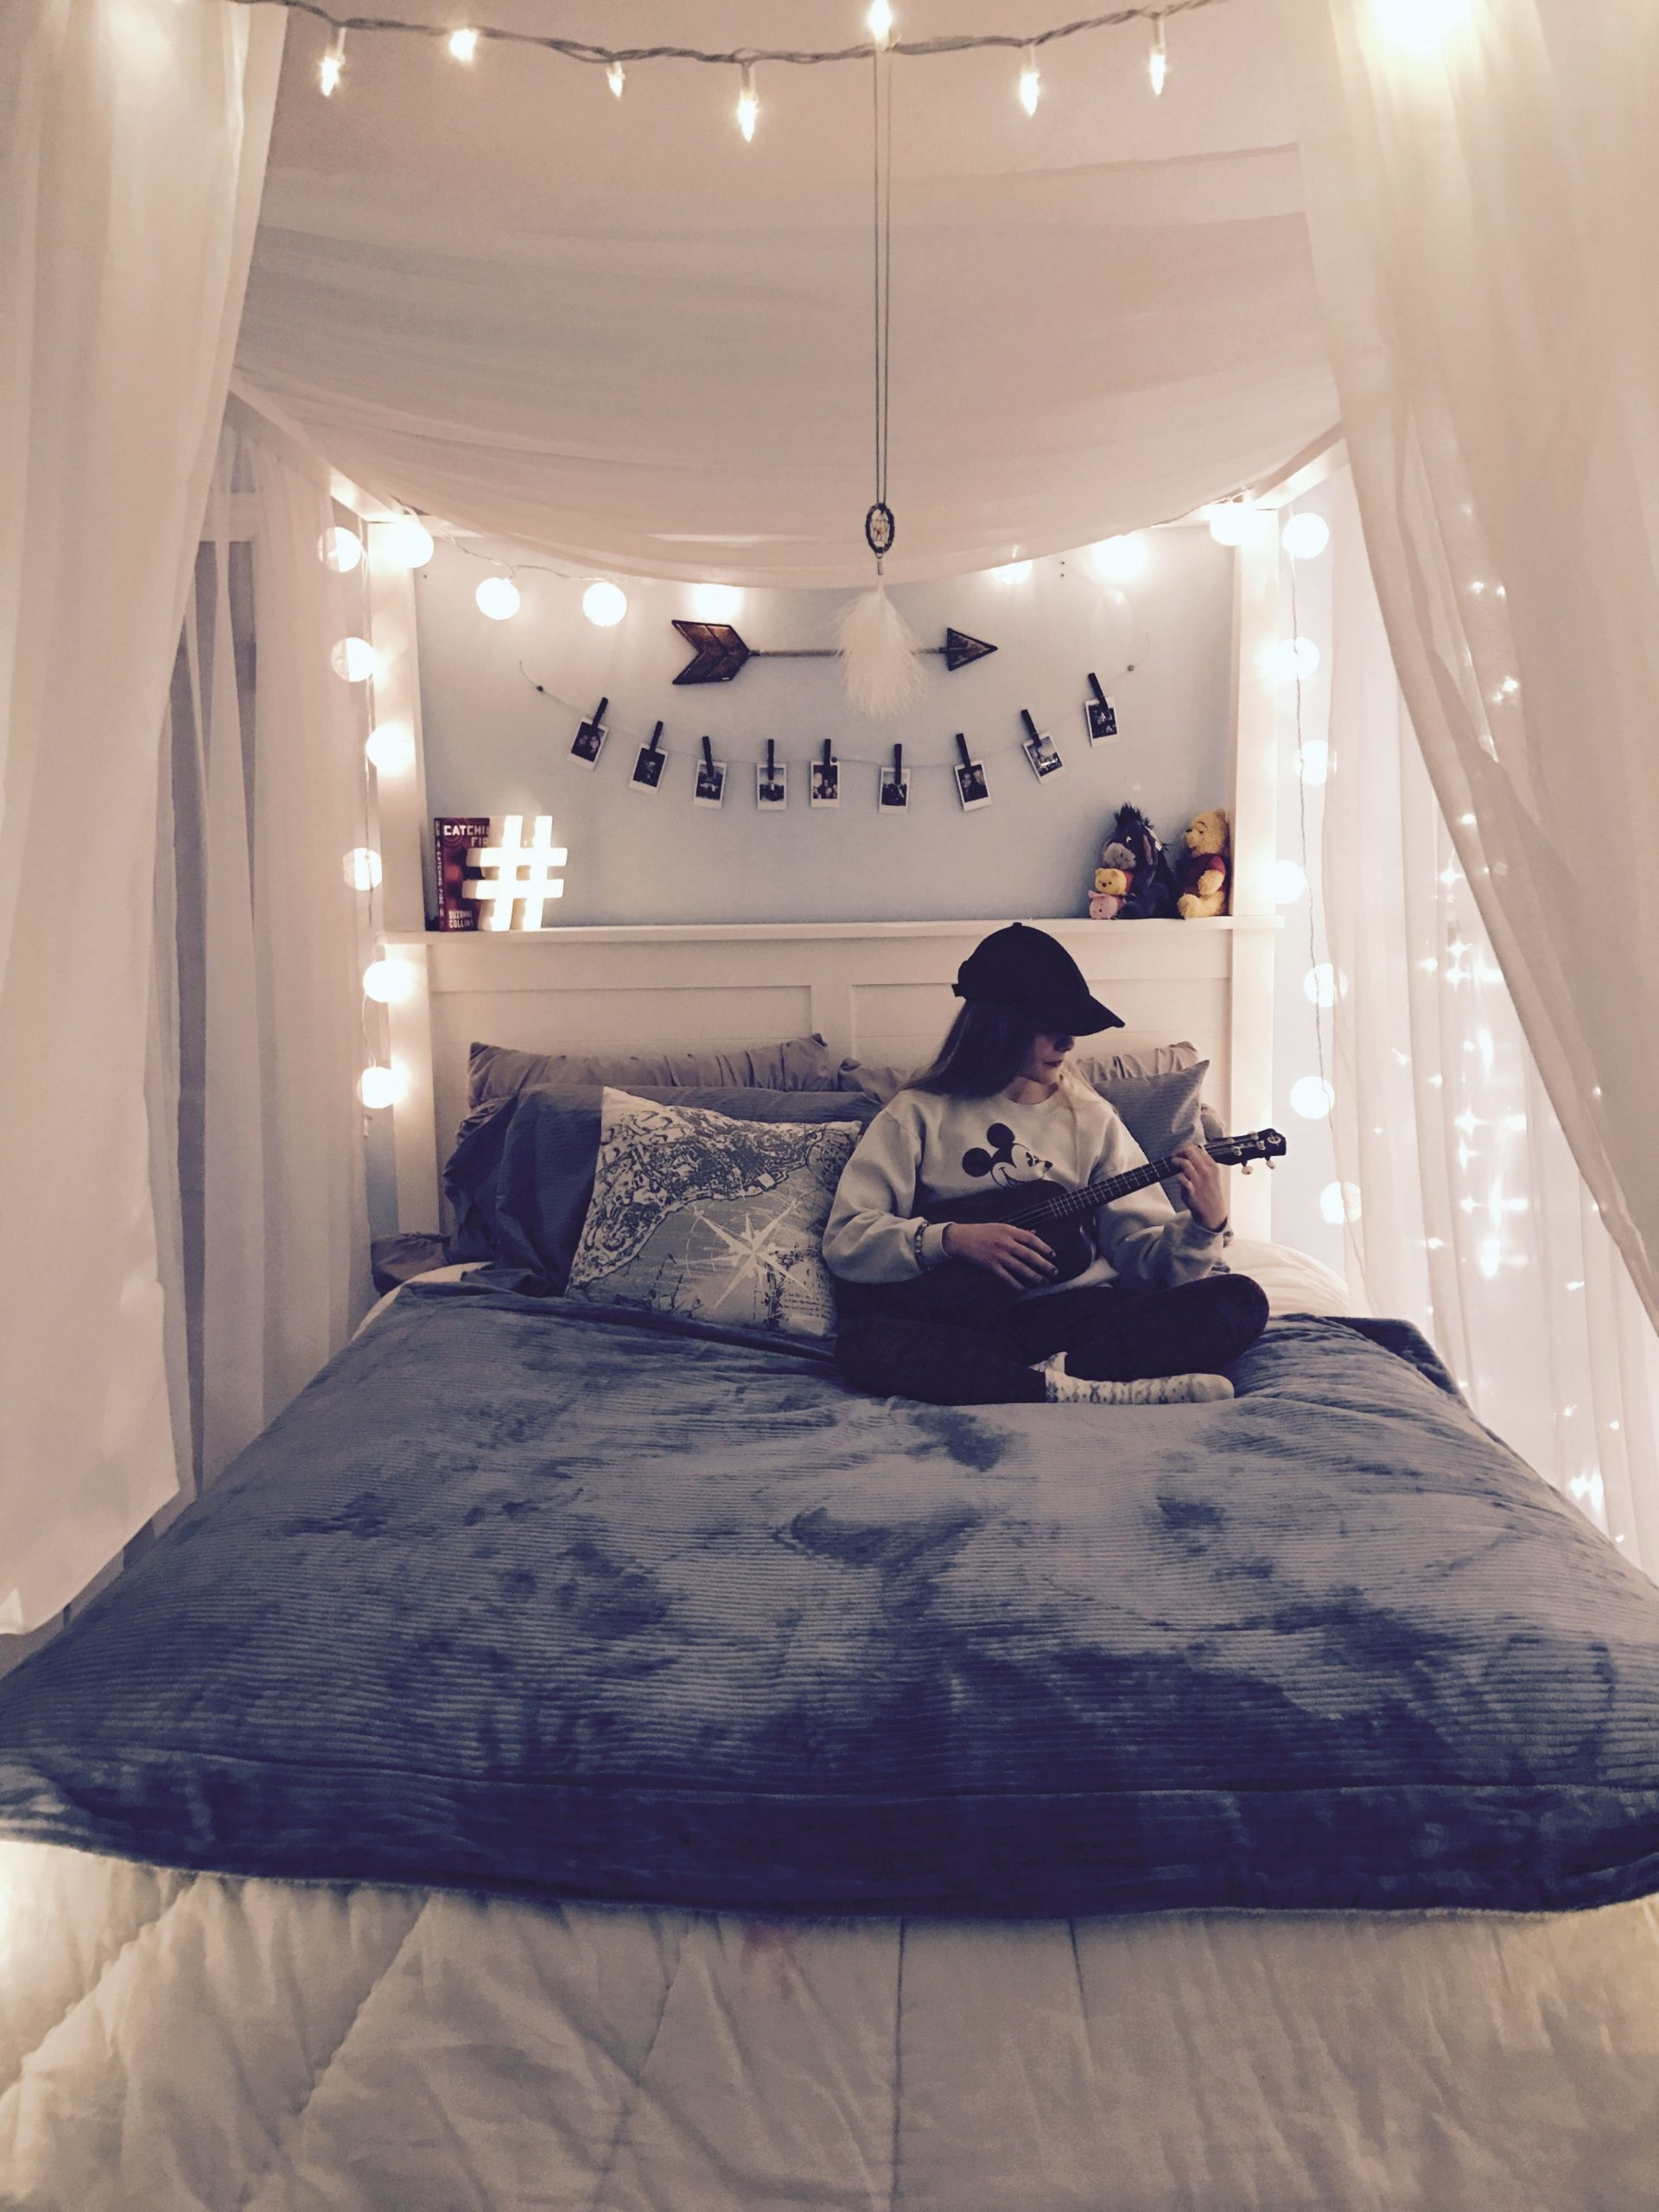 Pin on Teen Bedrooms - Bedroom Ideas Young Adults